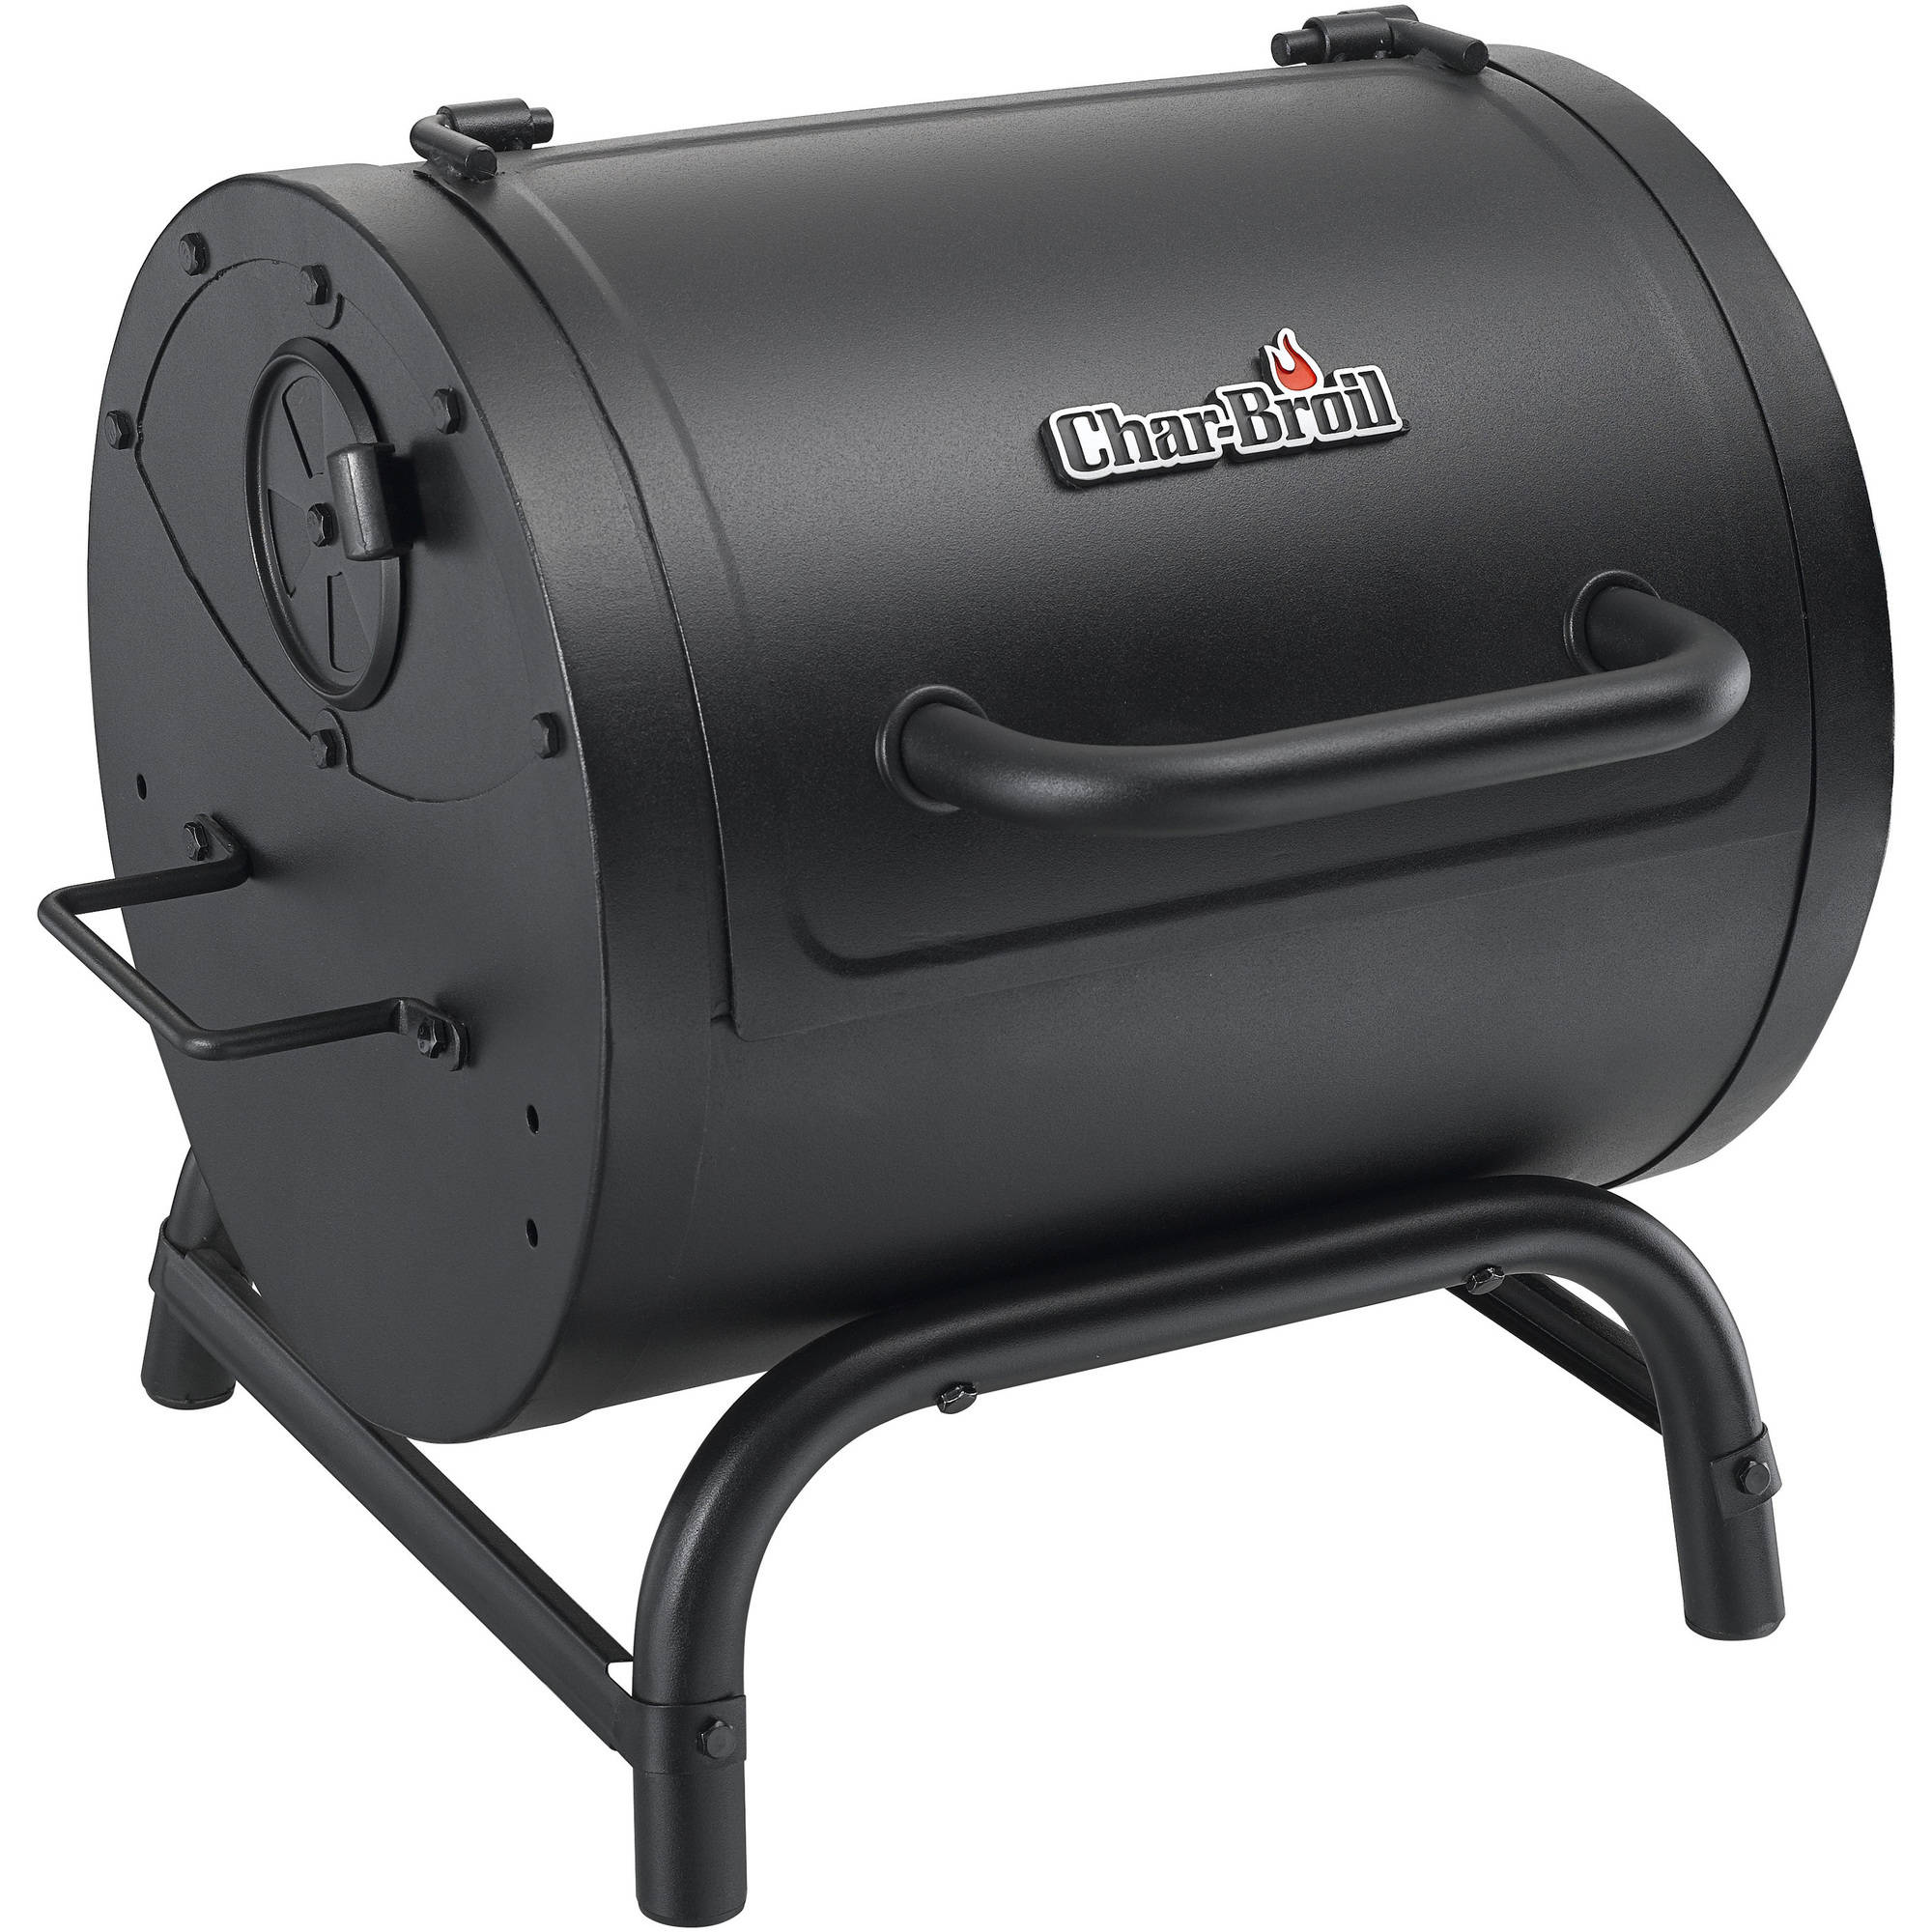 Char-Broil American Gourmet Charcoal Tabletop Grill